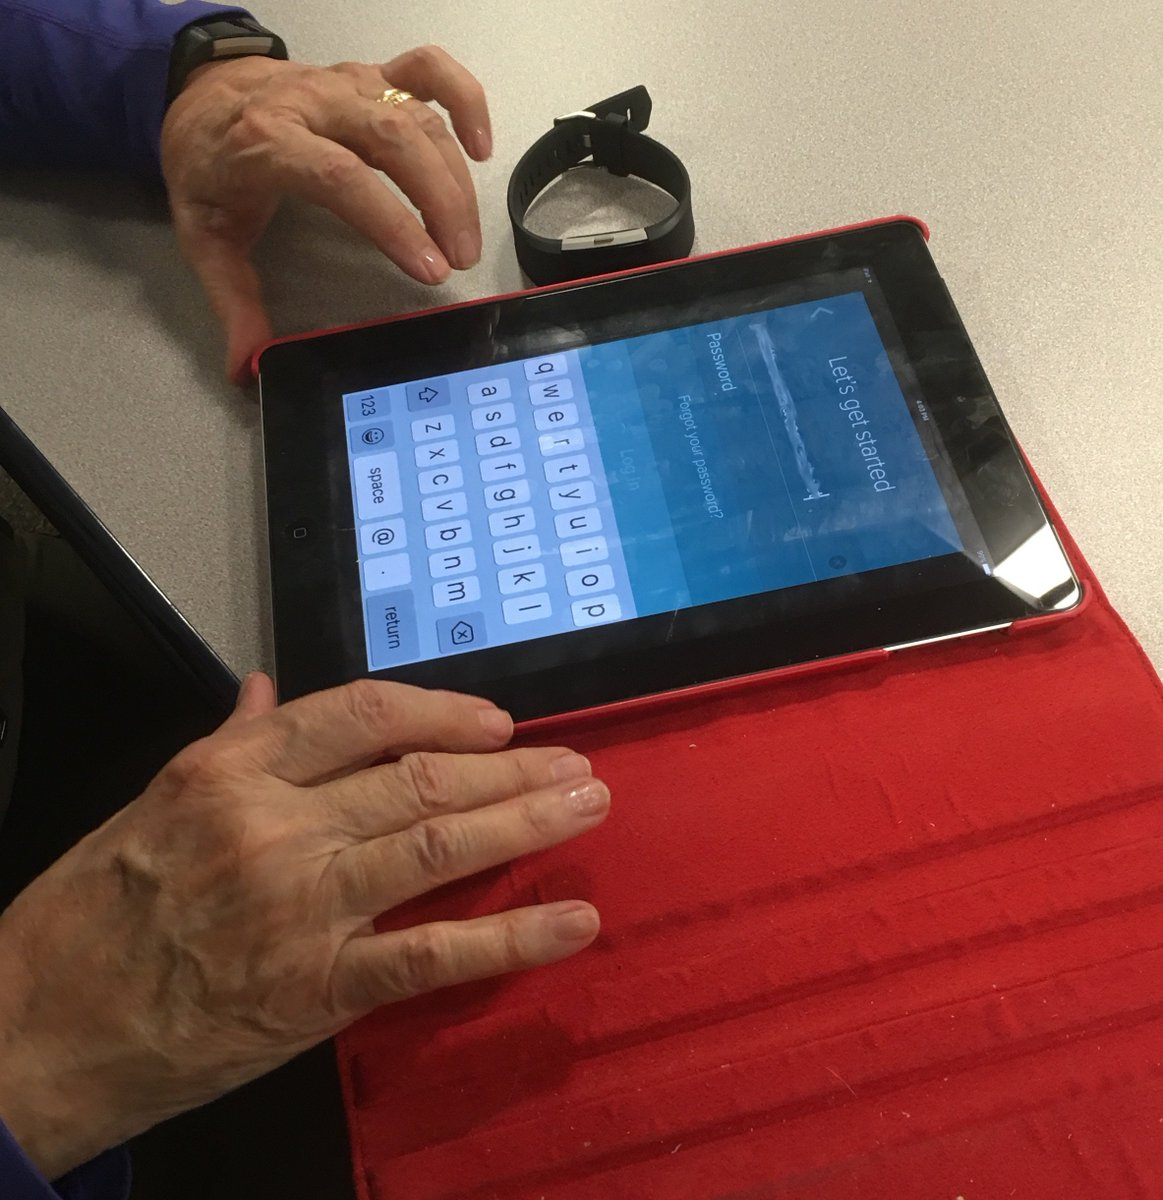 woman's hands on an older model ipad looking at fitbit login page